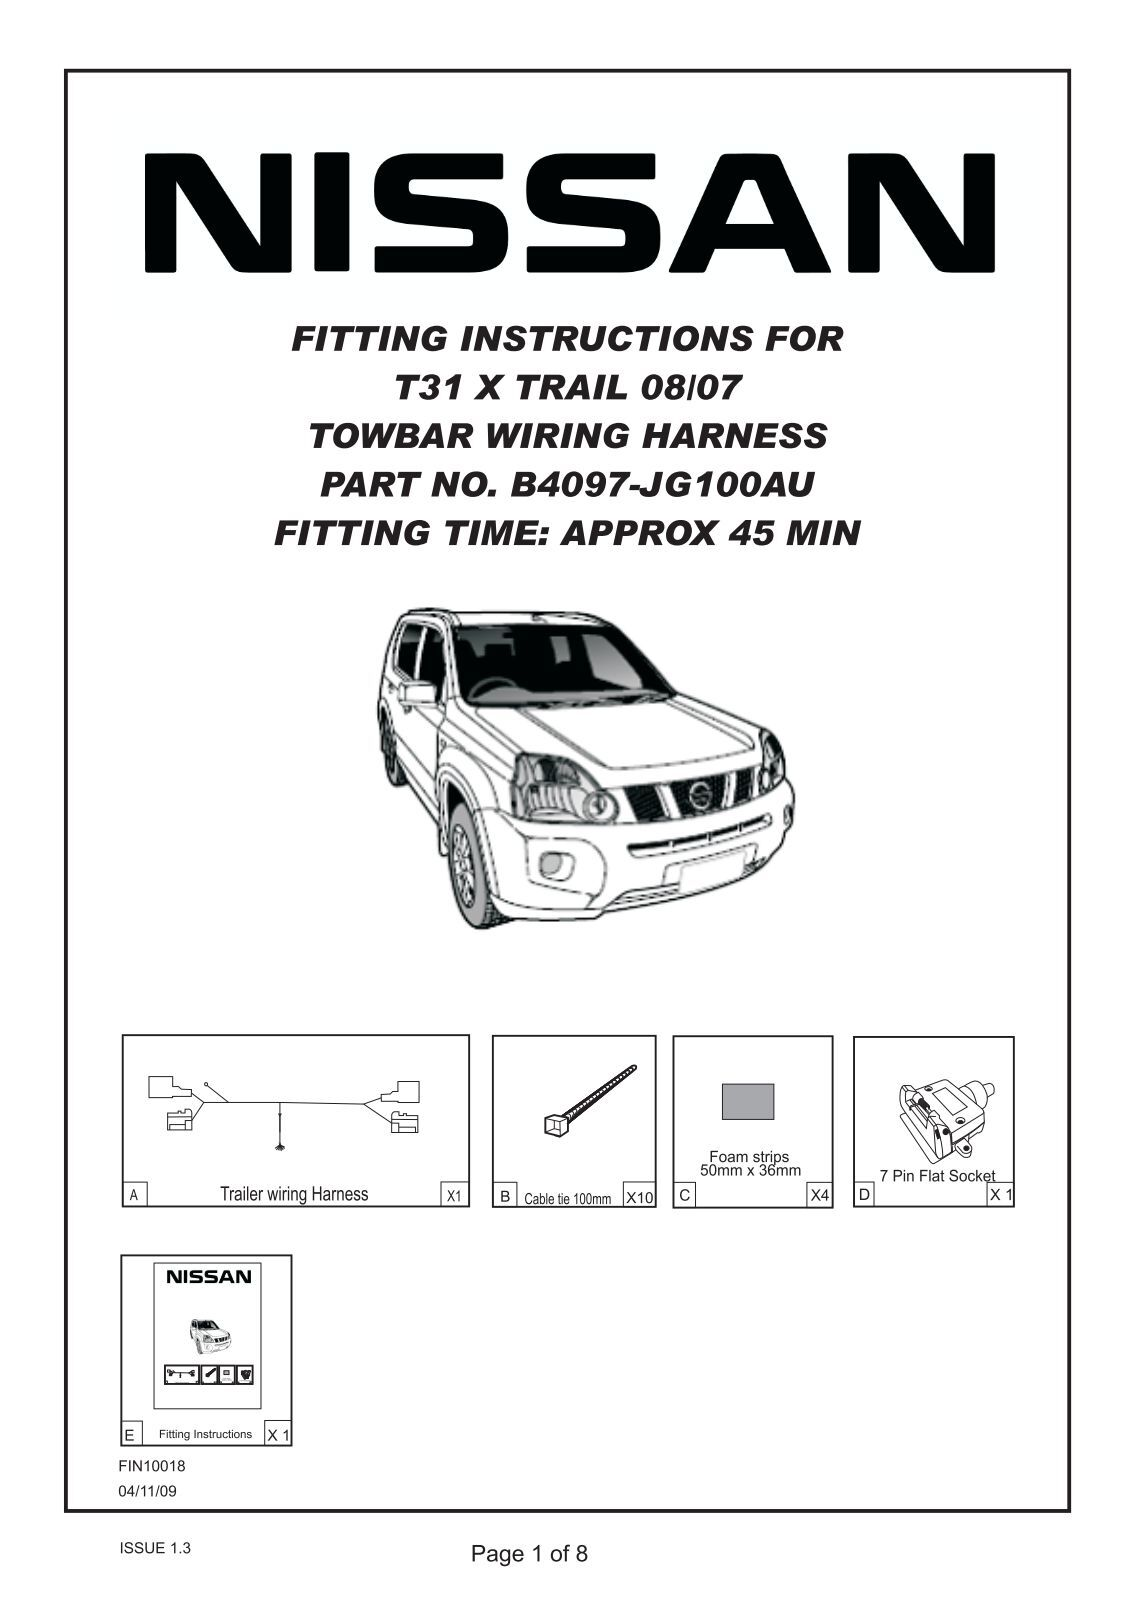 towbar wiring diagram pin flat towbar image nissan x trail towbar wiring  diagram wiring diagram and